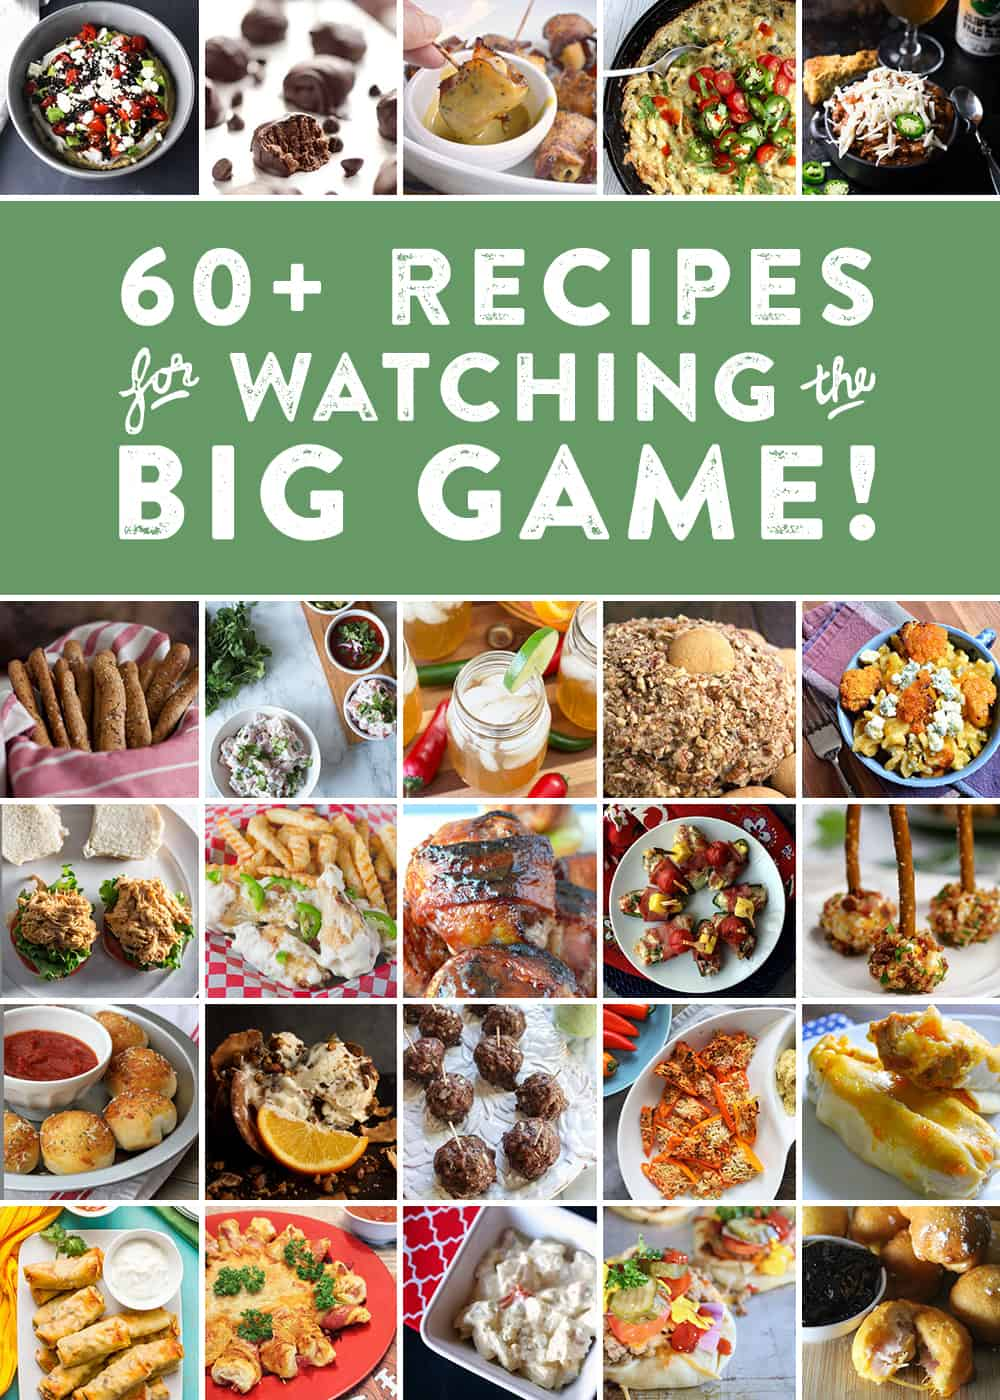 With the football season coming to a close, it's time to start thinking about Big Game parties and inevitably, the recipes you will make and bring to yours! In preparation, I've teamed up with my football blogger friends in one final collaboration to bring you some brilliant Big Game recipe ideas. We've made appetizers, entrees, desserts and even drinks. Prepare to be inspired! (via feastandwest.com)